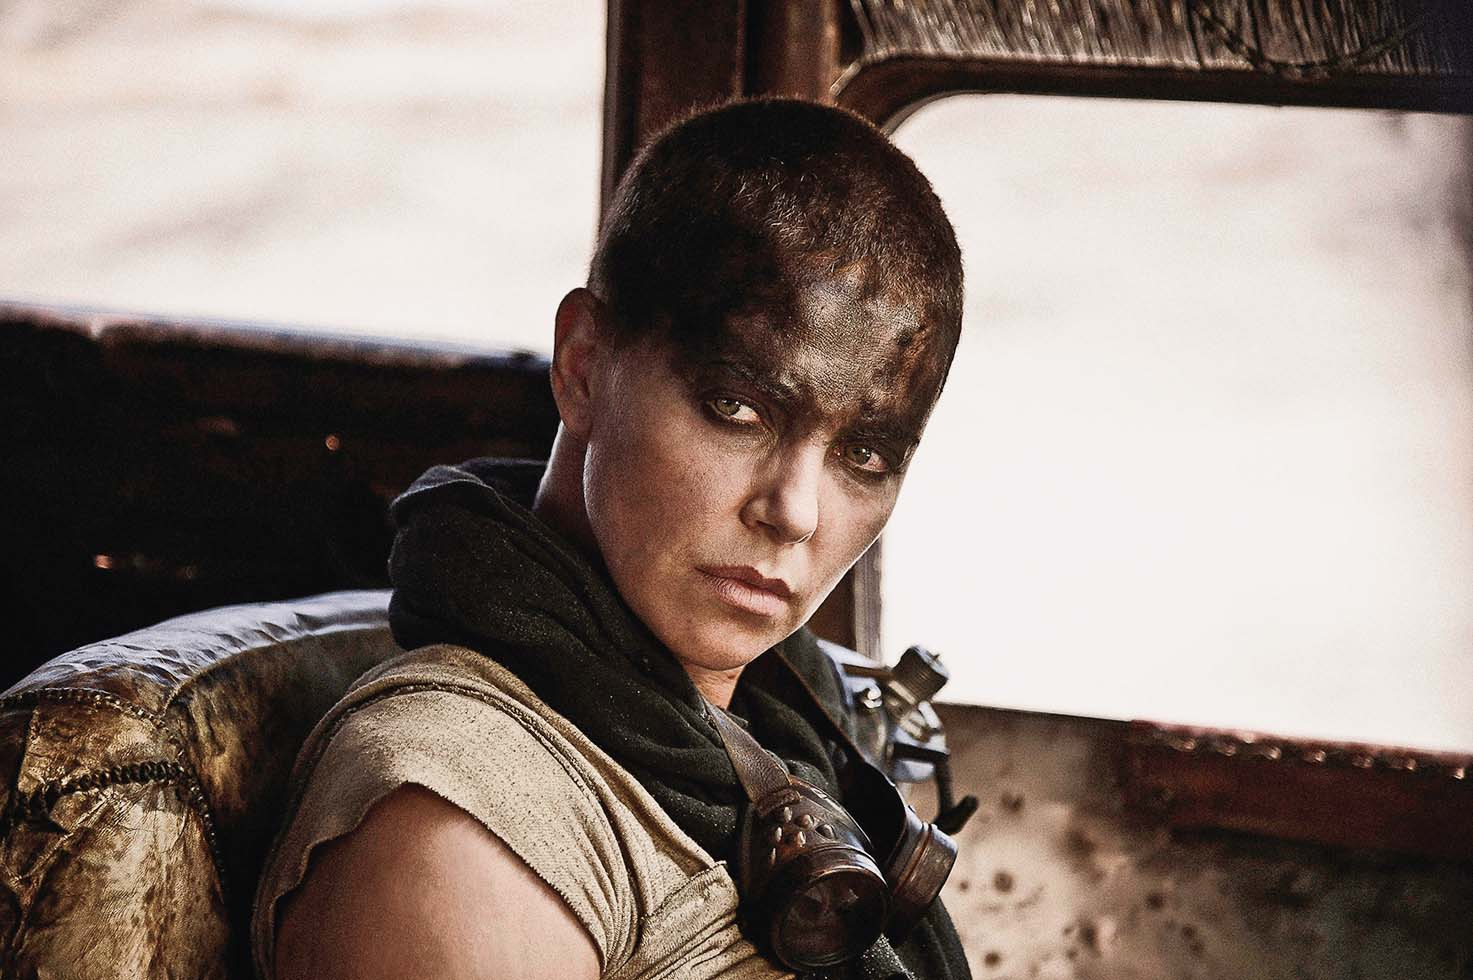 MAD MAX: FURY ROAD (2015) - CHARLIZE THERON., Image: 203330045, License: Rights-managed, Restrictions: Editorial use only. No merchandising or book covers. This is a publicly distributed handout. Access rights only, no license of copyright provided., Model Release: no, Credit line: VILLAGE ROADSHOW - Album / Album / Profimedia